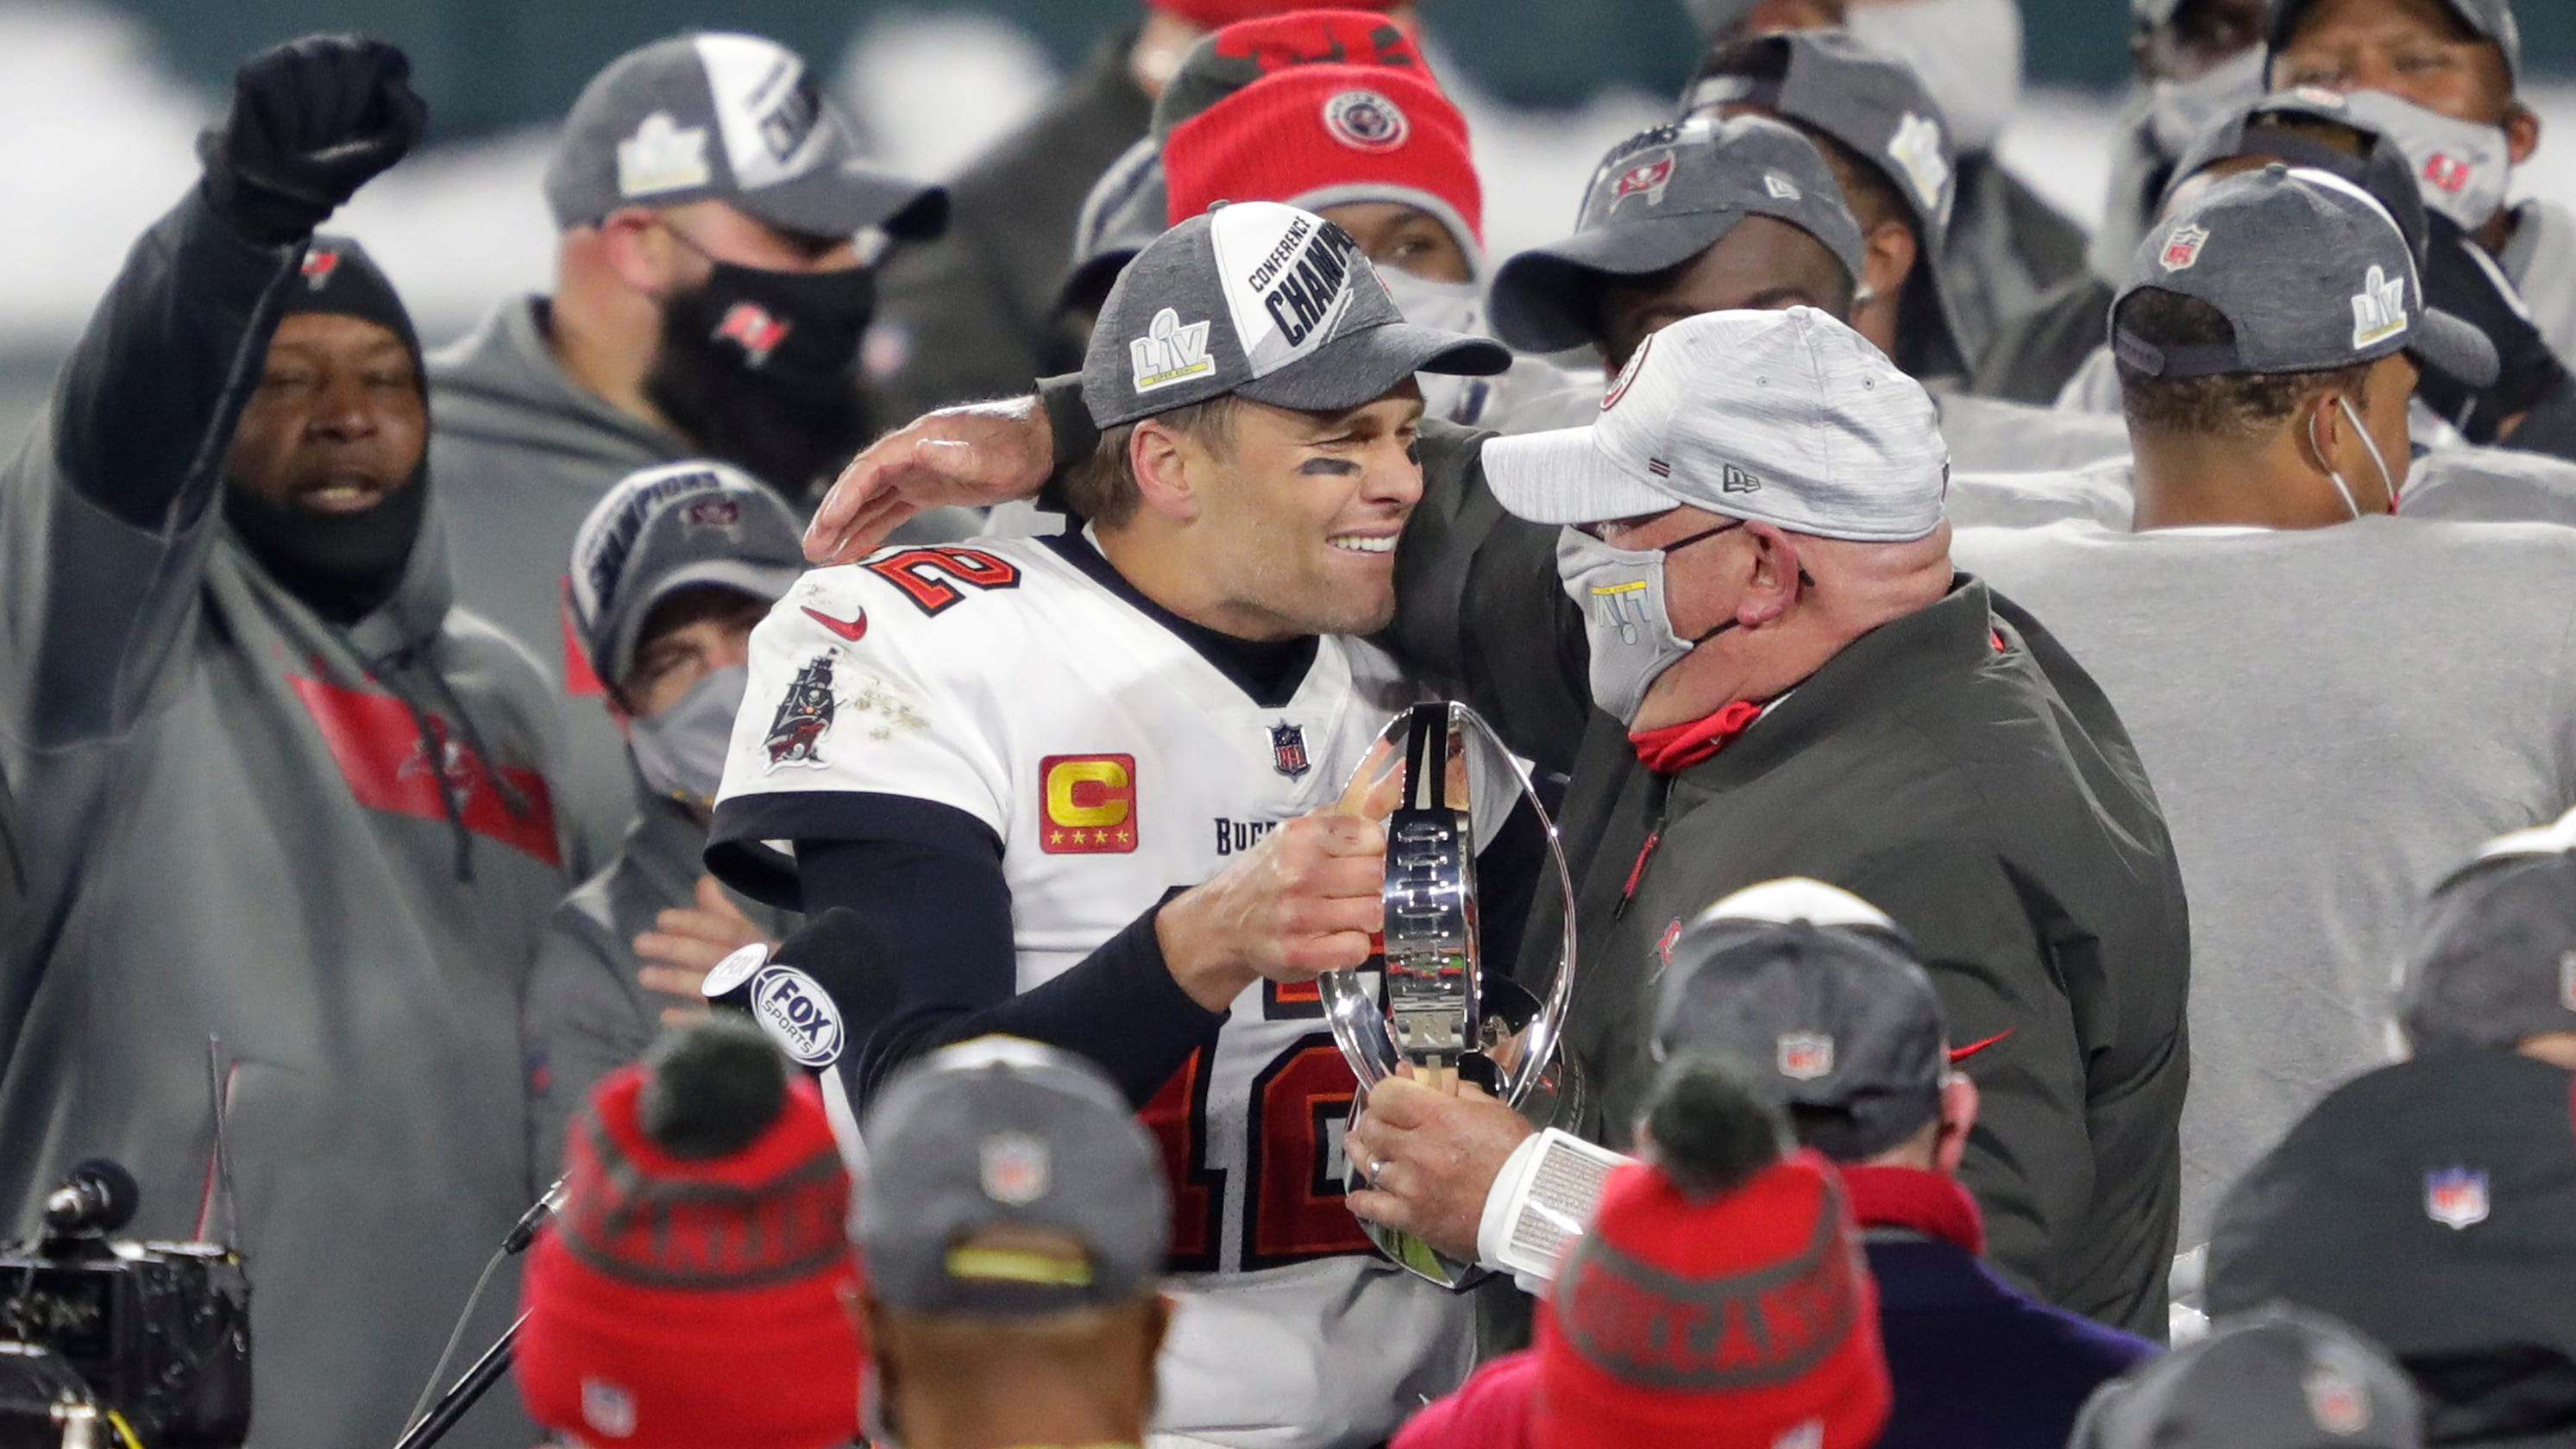 How Bruce Arians' Super Bowl run is rooted in family: 'He'll be the underdog forever'